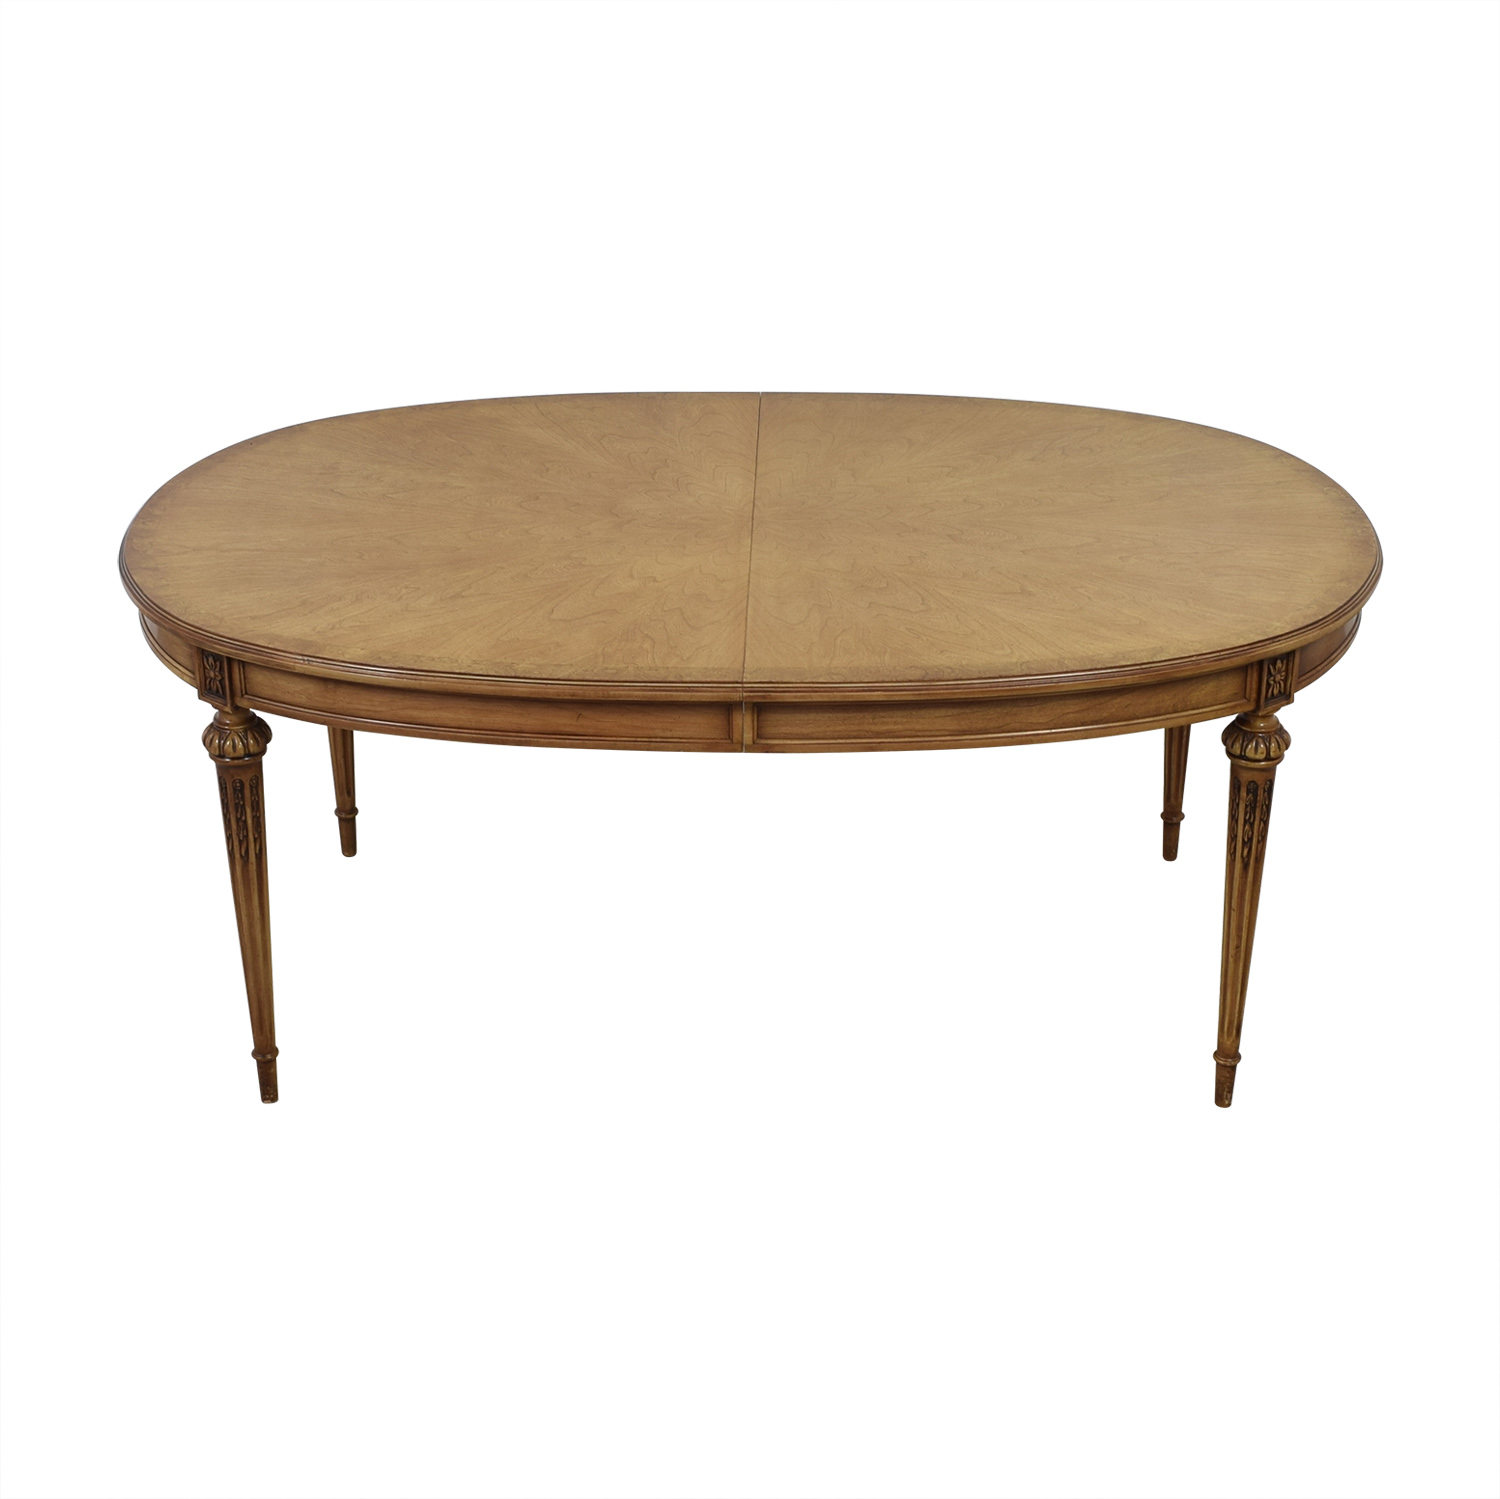 Oval Wood Dining Table with Protective Pad and Two Leaves Dinner Tables